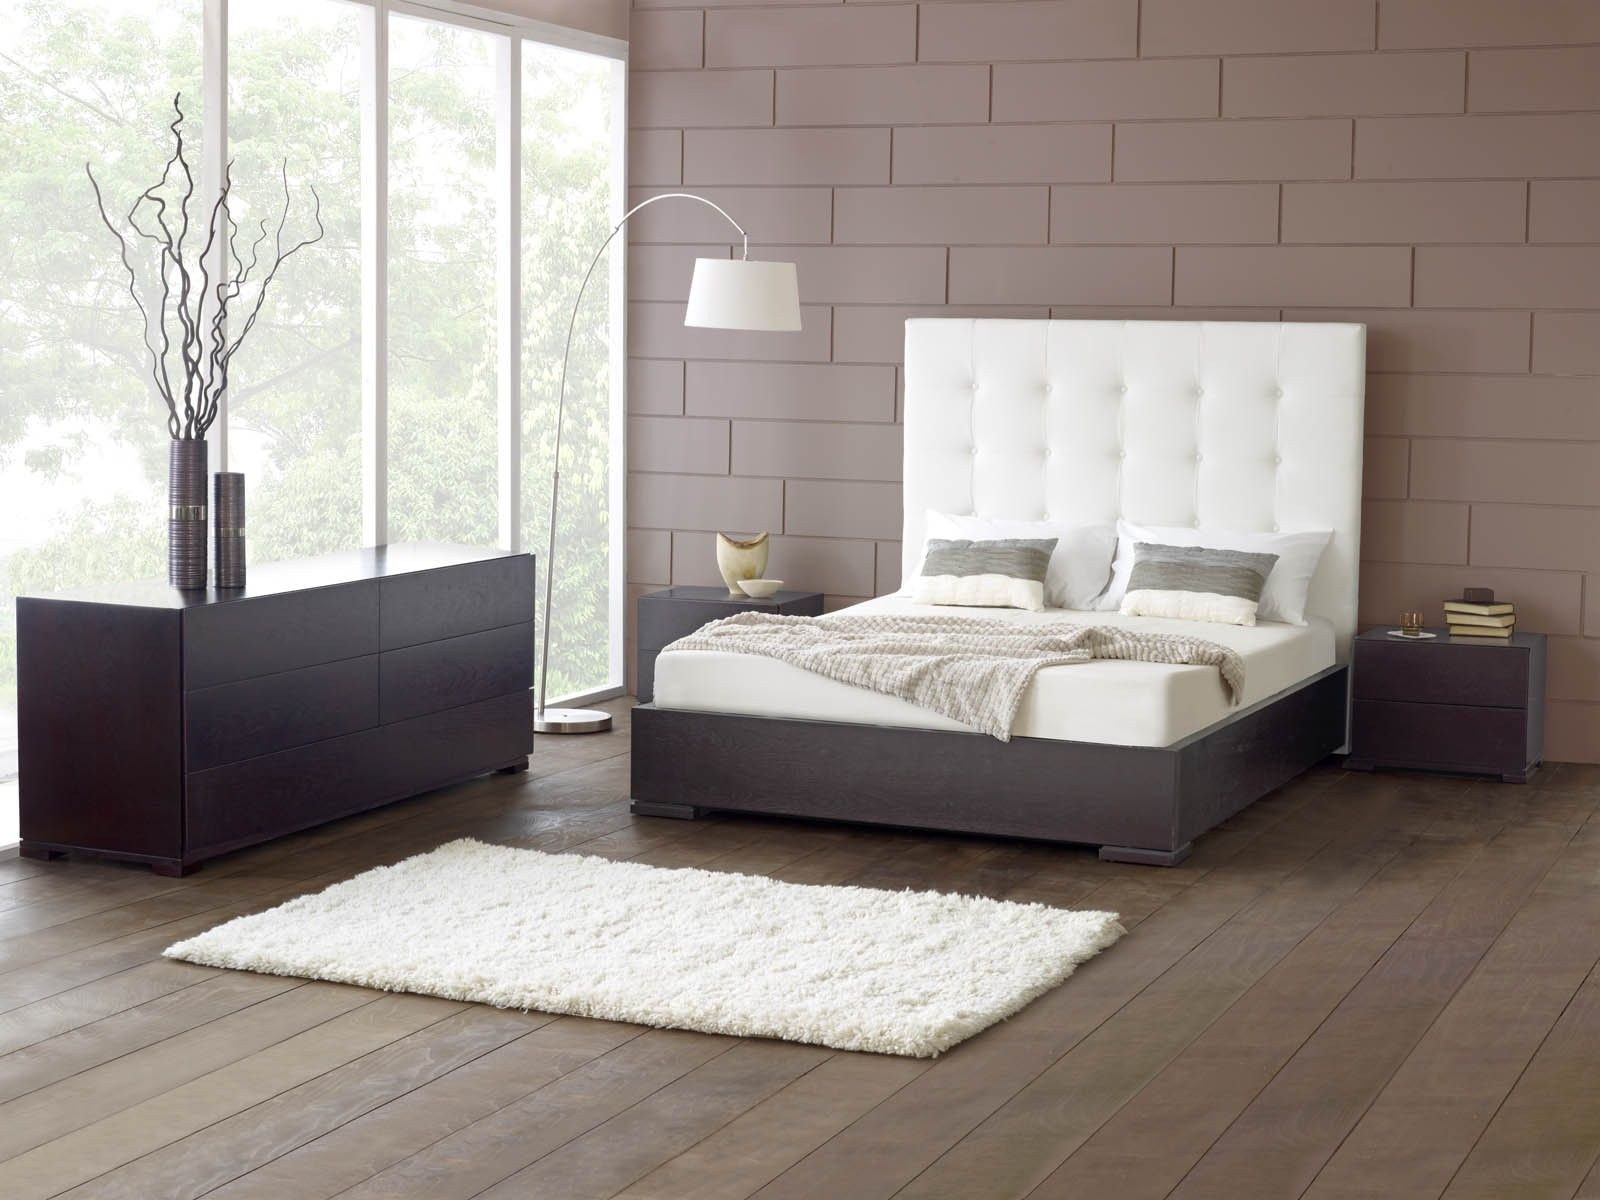 1000 images about furniture bedroom on pinterest bedroom furniture modern bedroom furniture and bedroom furniture sets bedroom interior ideas images design